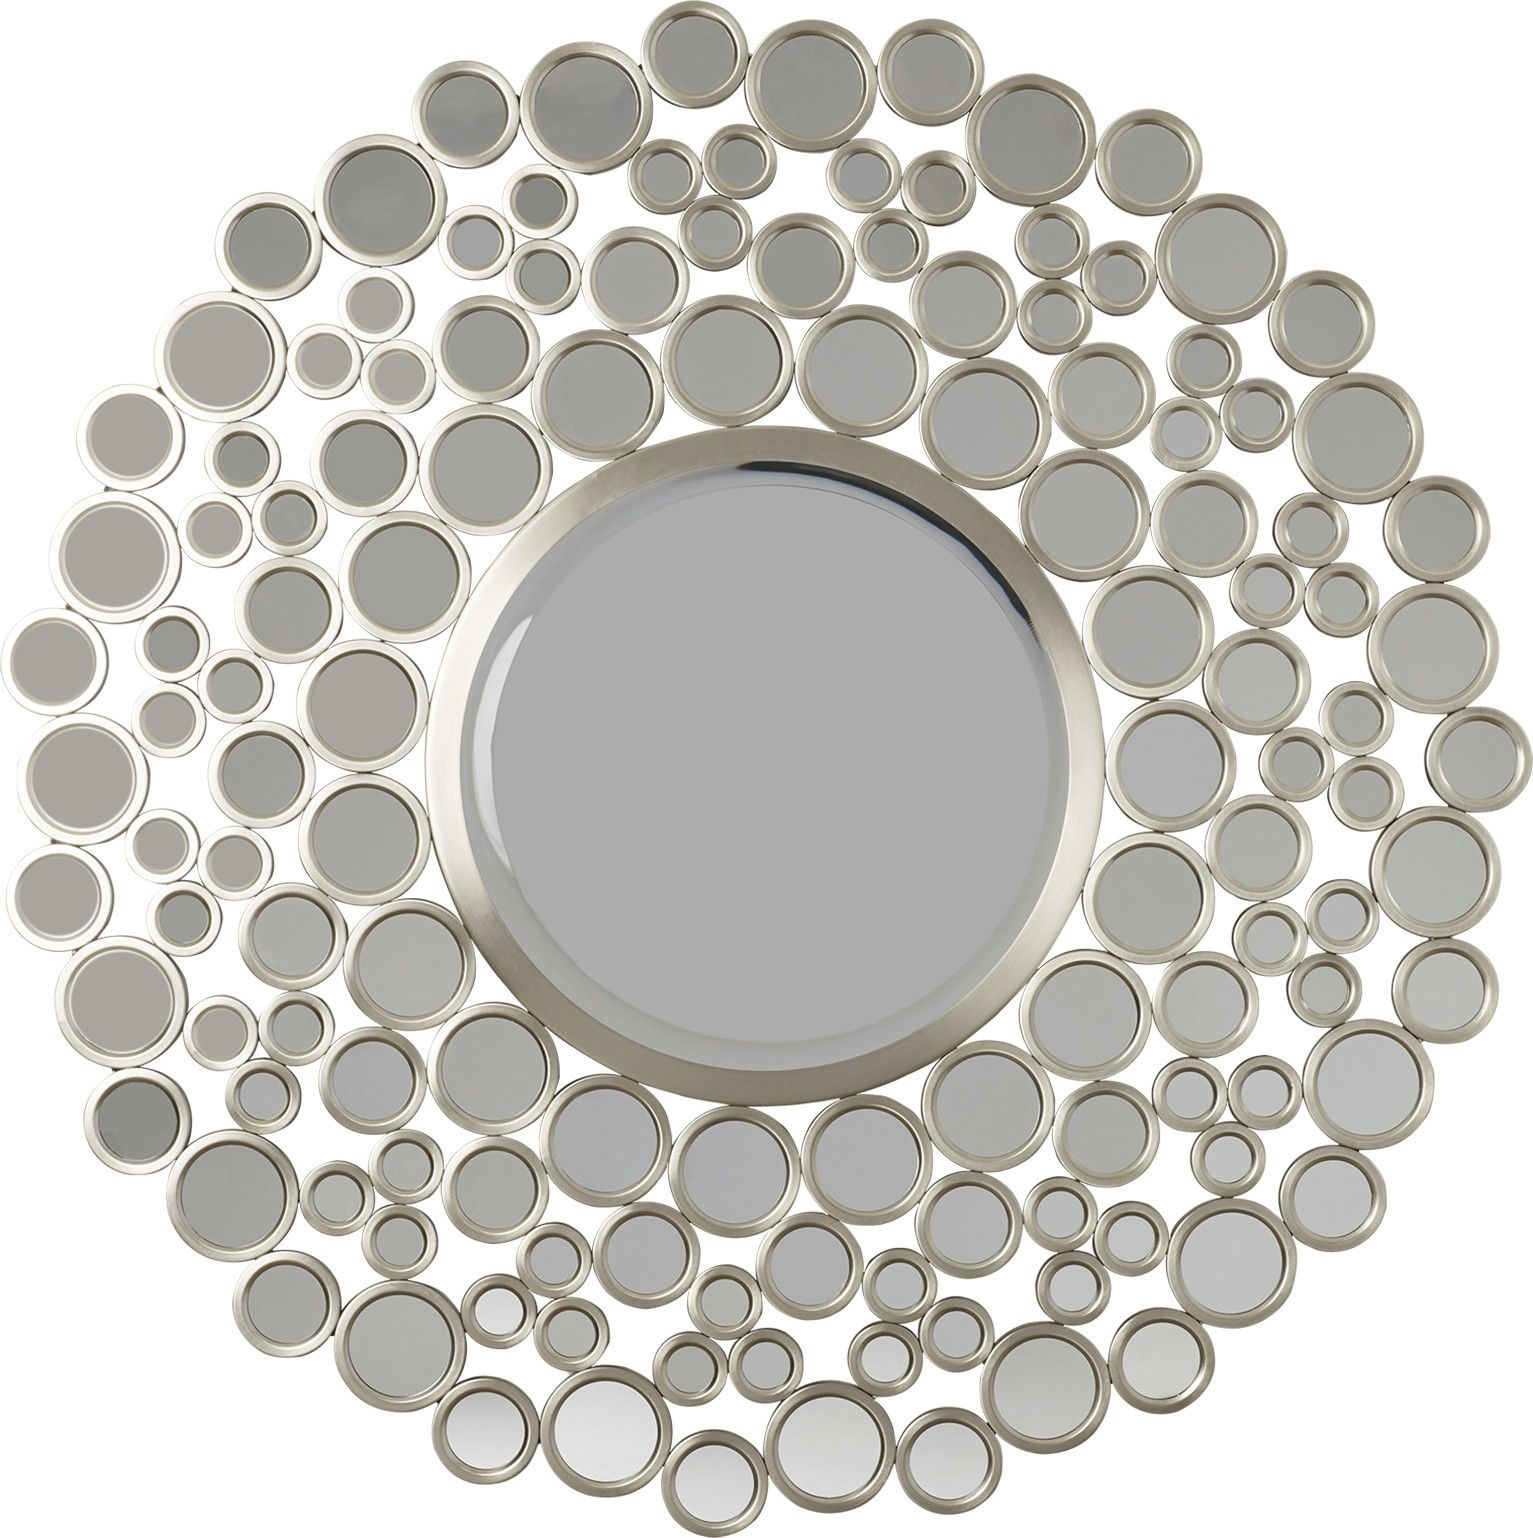 Kentwood Round Wall Mirror | Products | Small Round Mirrors Pertaining To Kentwood Round Wall Mirrors (Gallery 4 of 30)